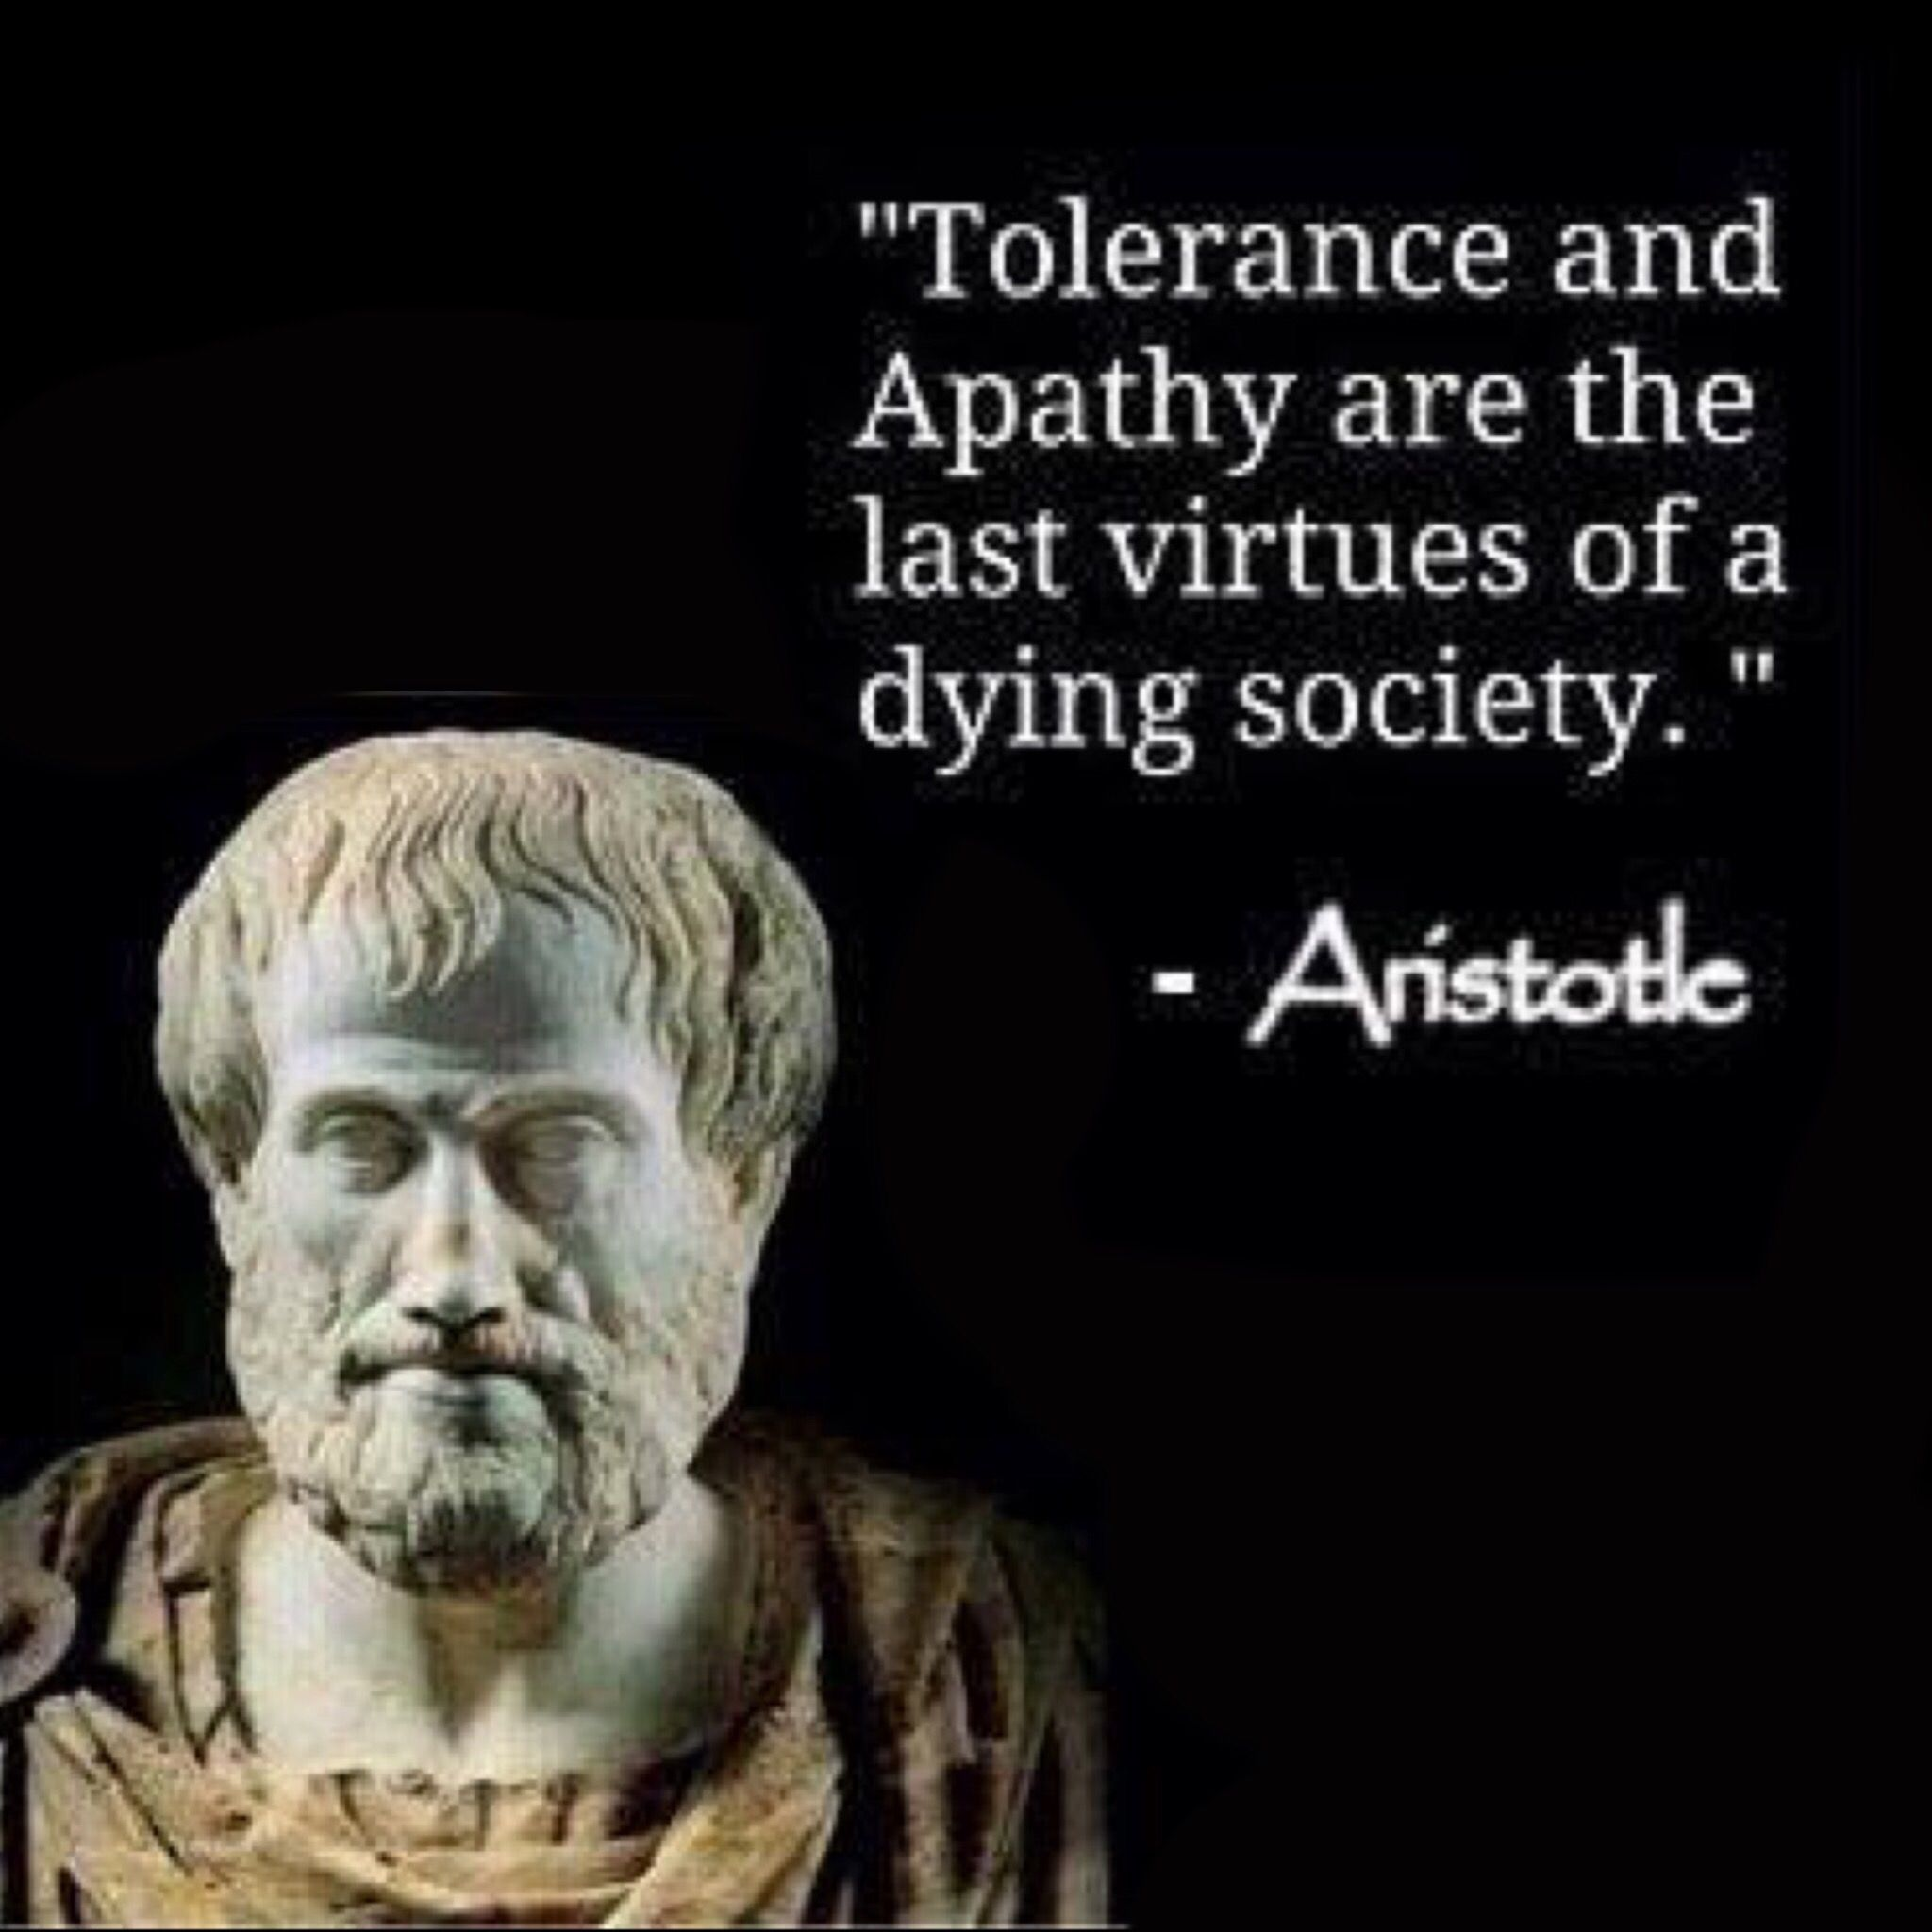 Tolerance and apathy are the last virtues of a dying society. -Aristotle